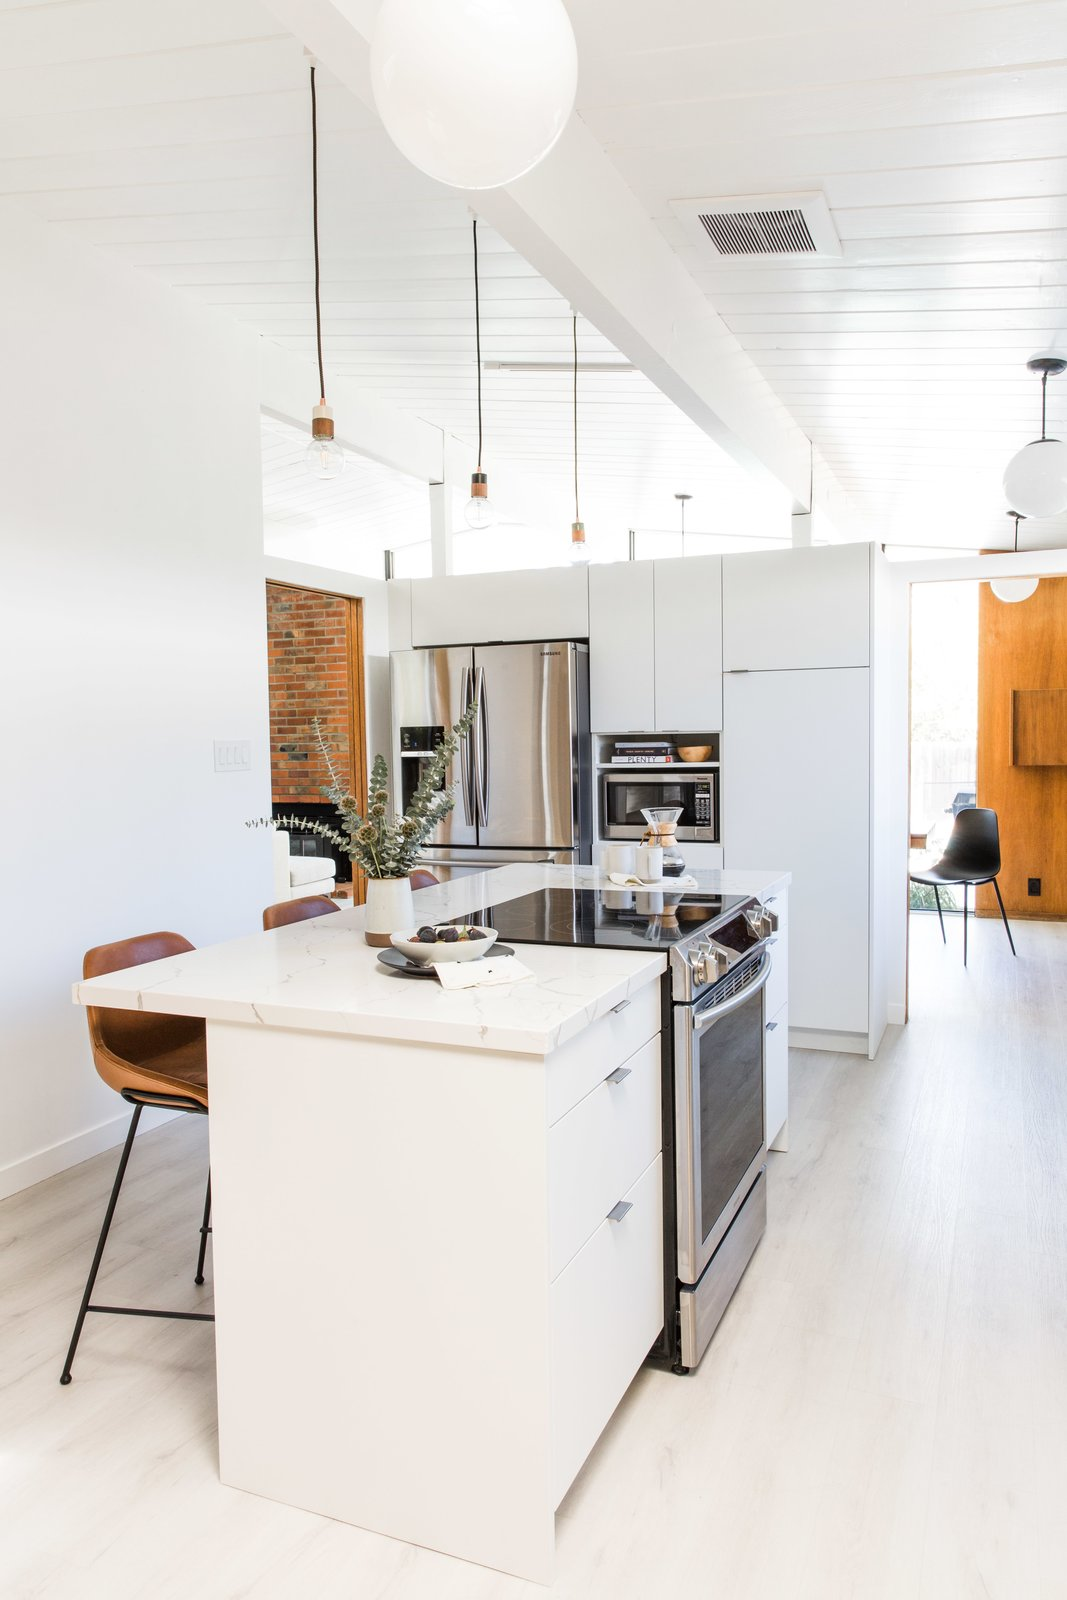 Kitchen, White Cabinet, Refrigerator, Cooktops, Range, Marble Counter, Pendant Lighting, Microwave, Undermount Sink, and Light Hardwood Floor Hong elevated the new IKEA kitchen with white slab fronts from Semihandmade.  Best Photos from Budget Breakdown: A Cramped Eichler Kitchen Gets a $49K Refresh